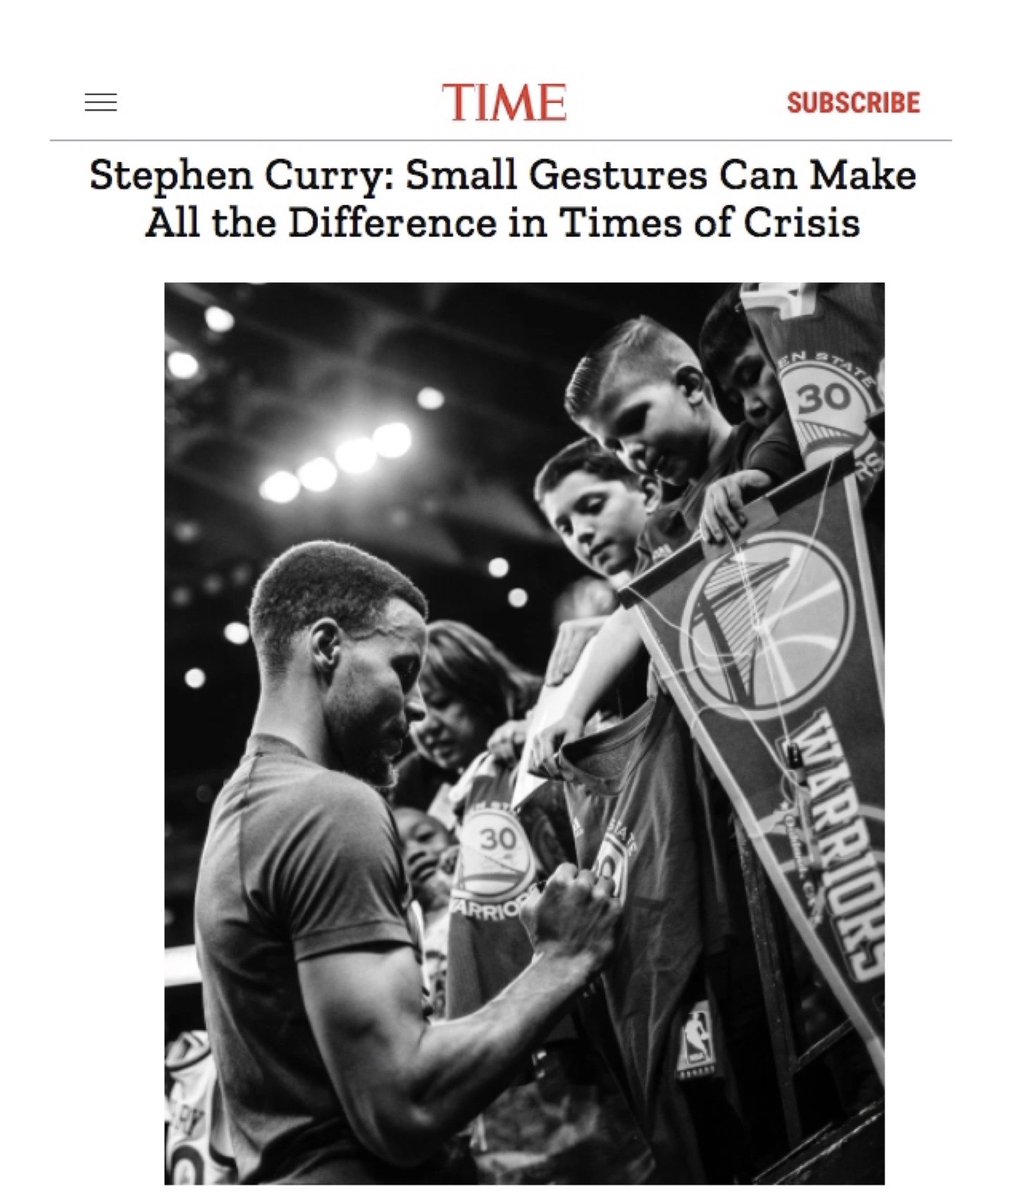 """""""My wife @ayeshacurry frequently says, 'Be the village to help people who are in need,' and that's what we're trying to do. Oakland has been our beloved city for more than 10 years."""" -@StephenCurry30 on our work for our Oakland village in @TIME. Read: https://t.co/g6EwBZ9UZD https://t.co/GTrAIccupg"""